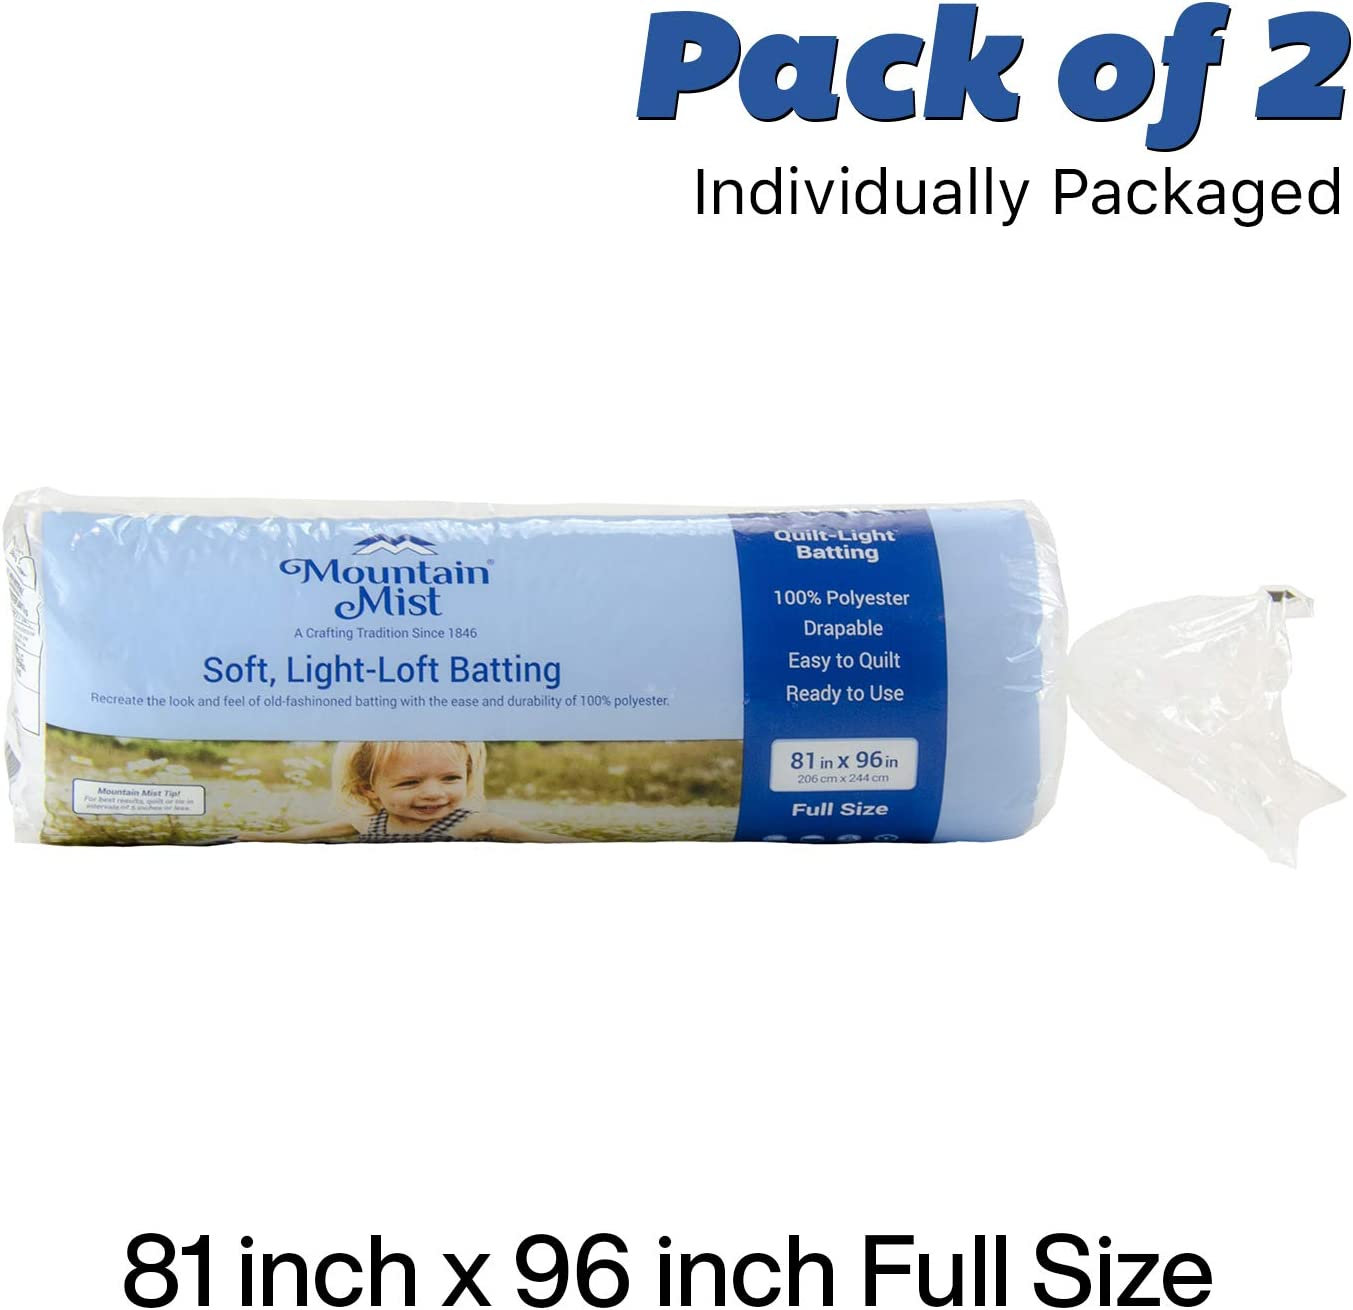 2-Pack Mountain Mist Quilt-Light Polyester Quilt Batting Full Size 81 x 96 Inches